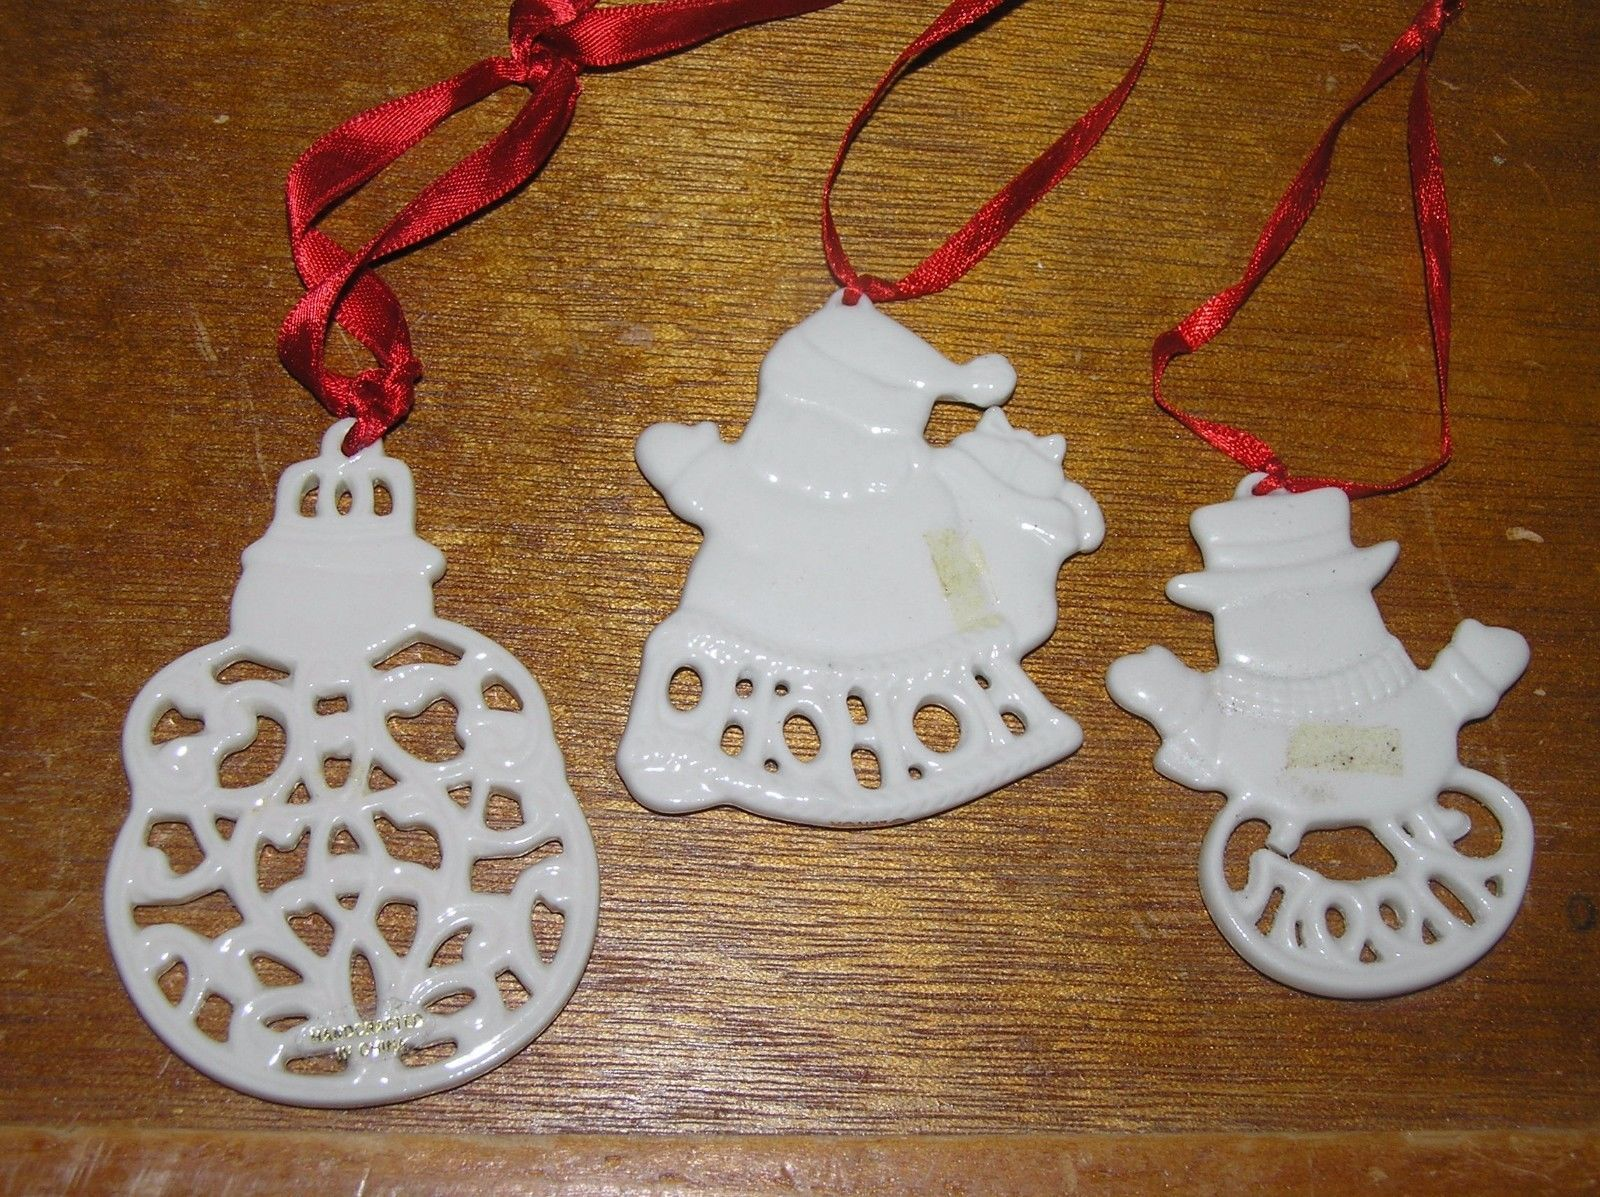 Vintage Lot of 3 Lenox Pierced Cream Porcelain SNOWMAN Santa Claus Christmas